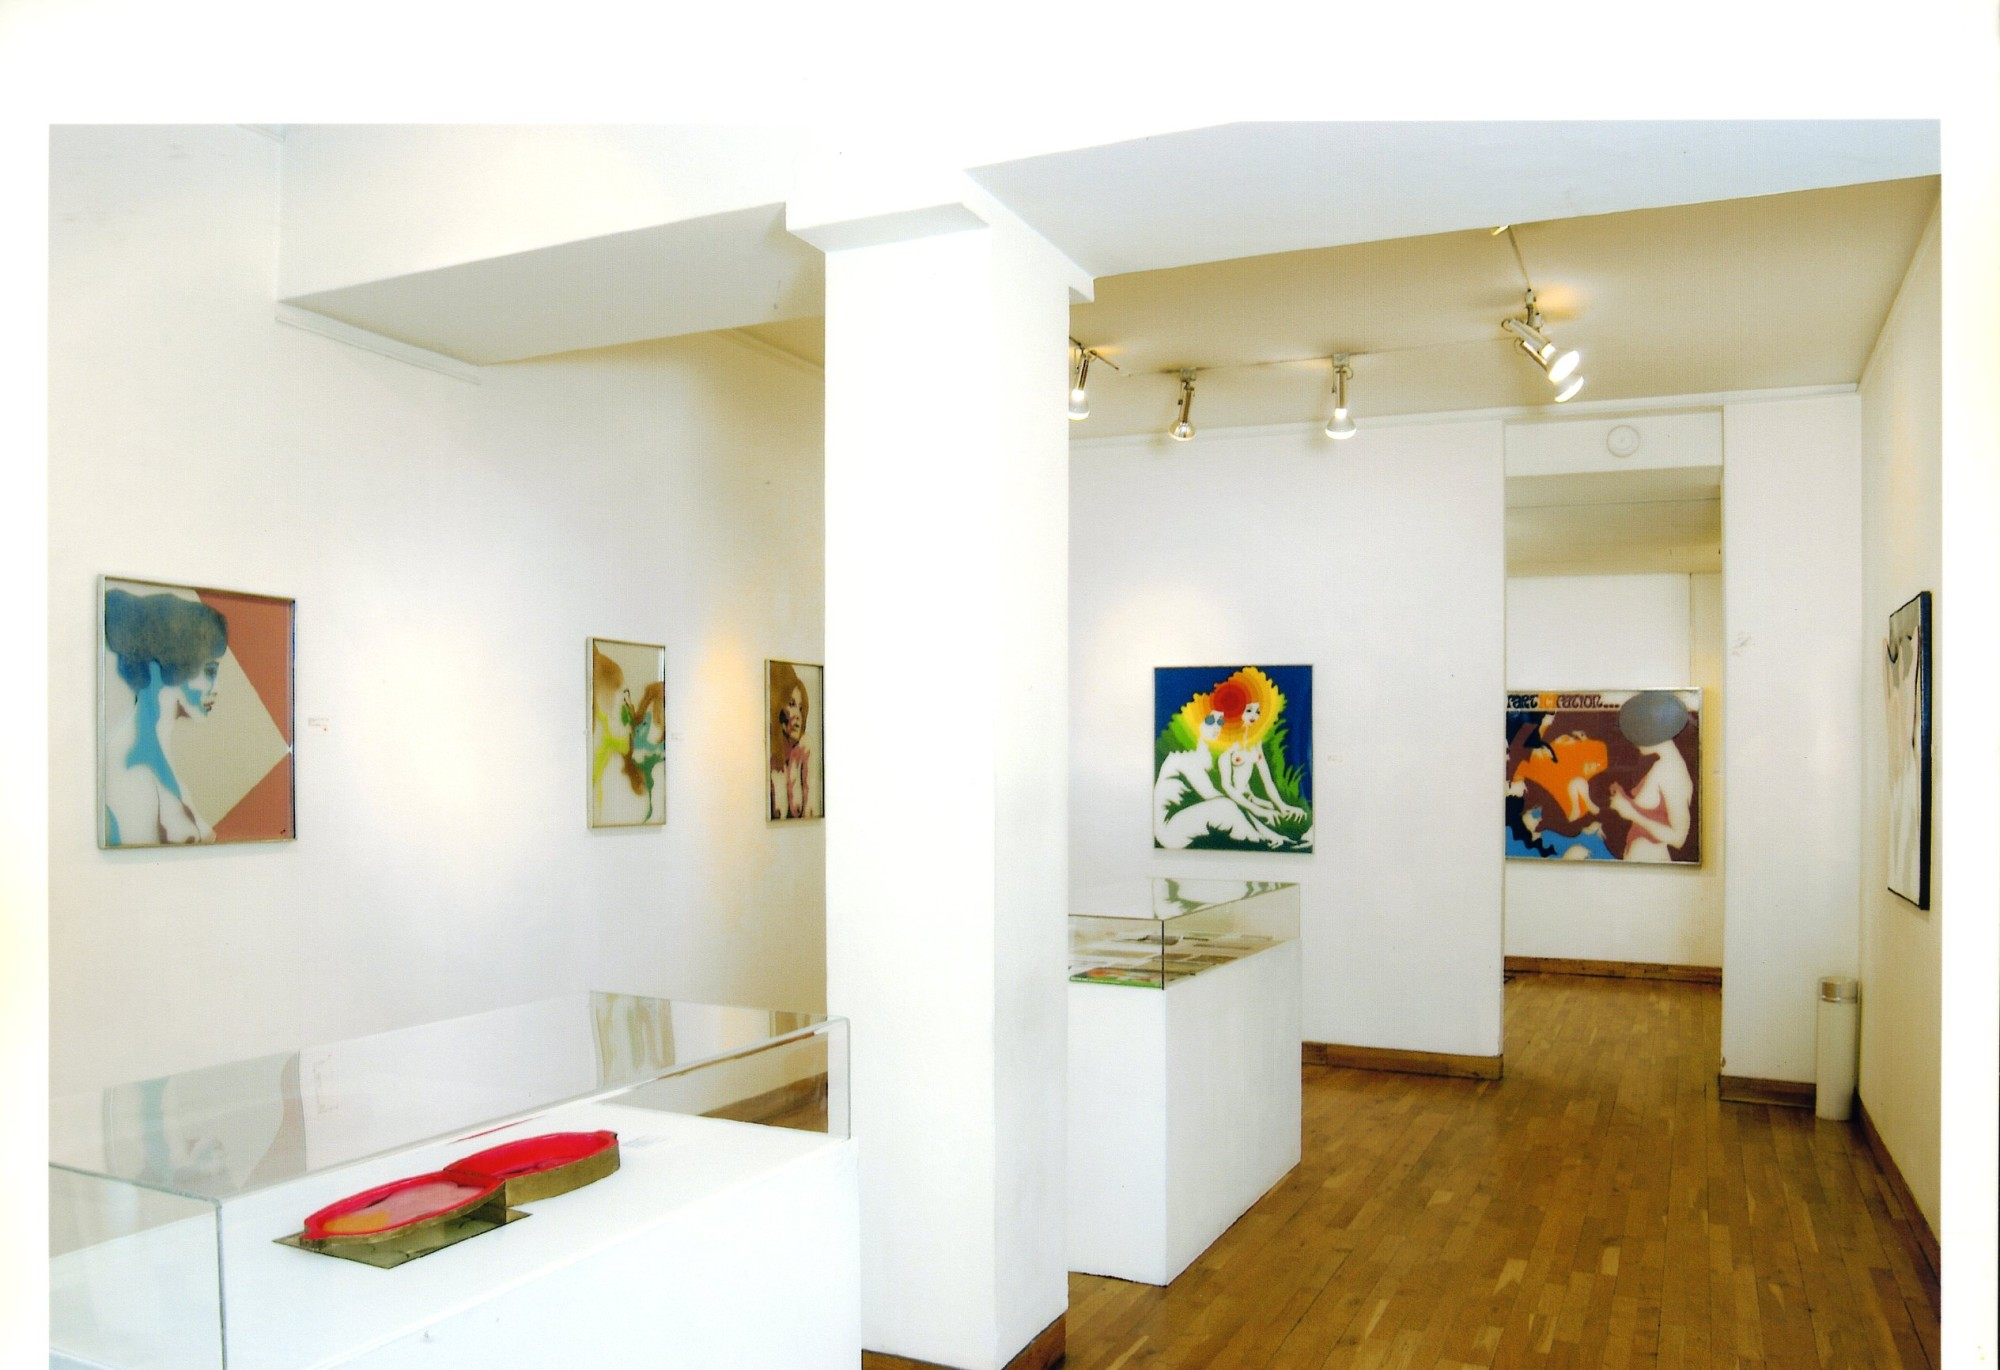 """<span class=""""link fancybox-details-link""""><a href=""""/exhibitions/119/works/image_standalone501/"""">View Detail Page</a></span><p>EVELYNE AXELL   FROM POP ART TO PARADISE   24 MAR - 4 JUL 2005   Installation View</p>"""